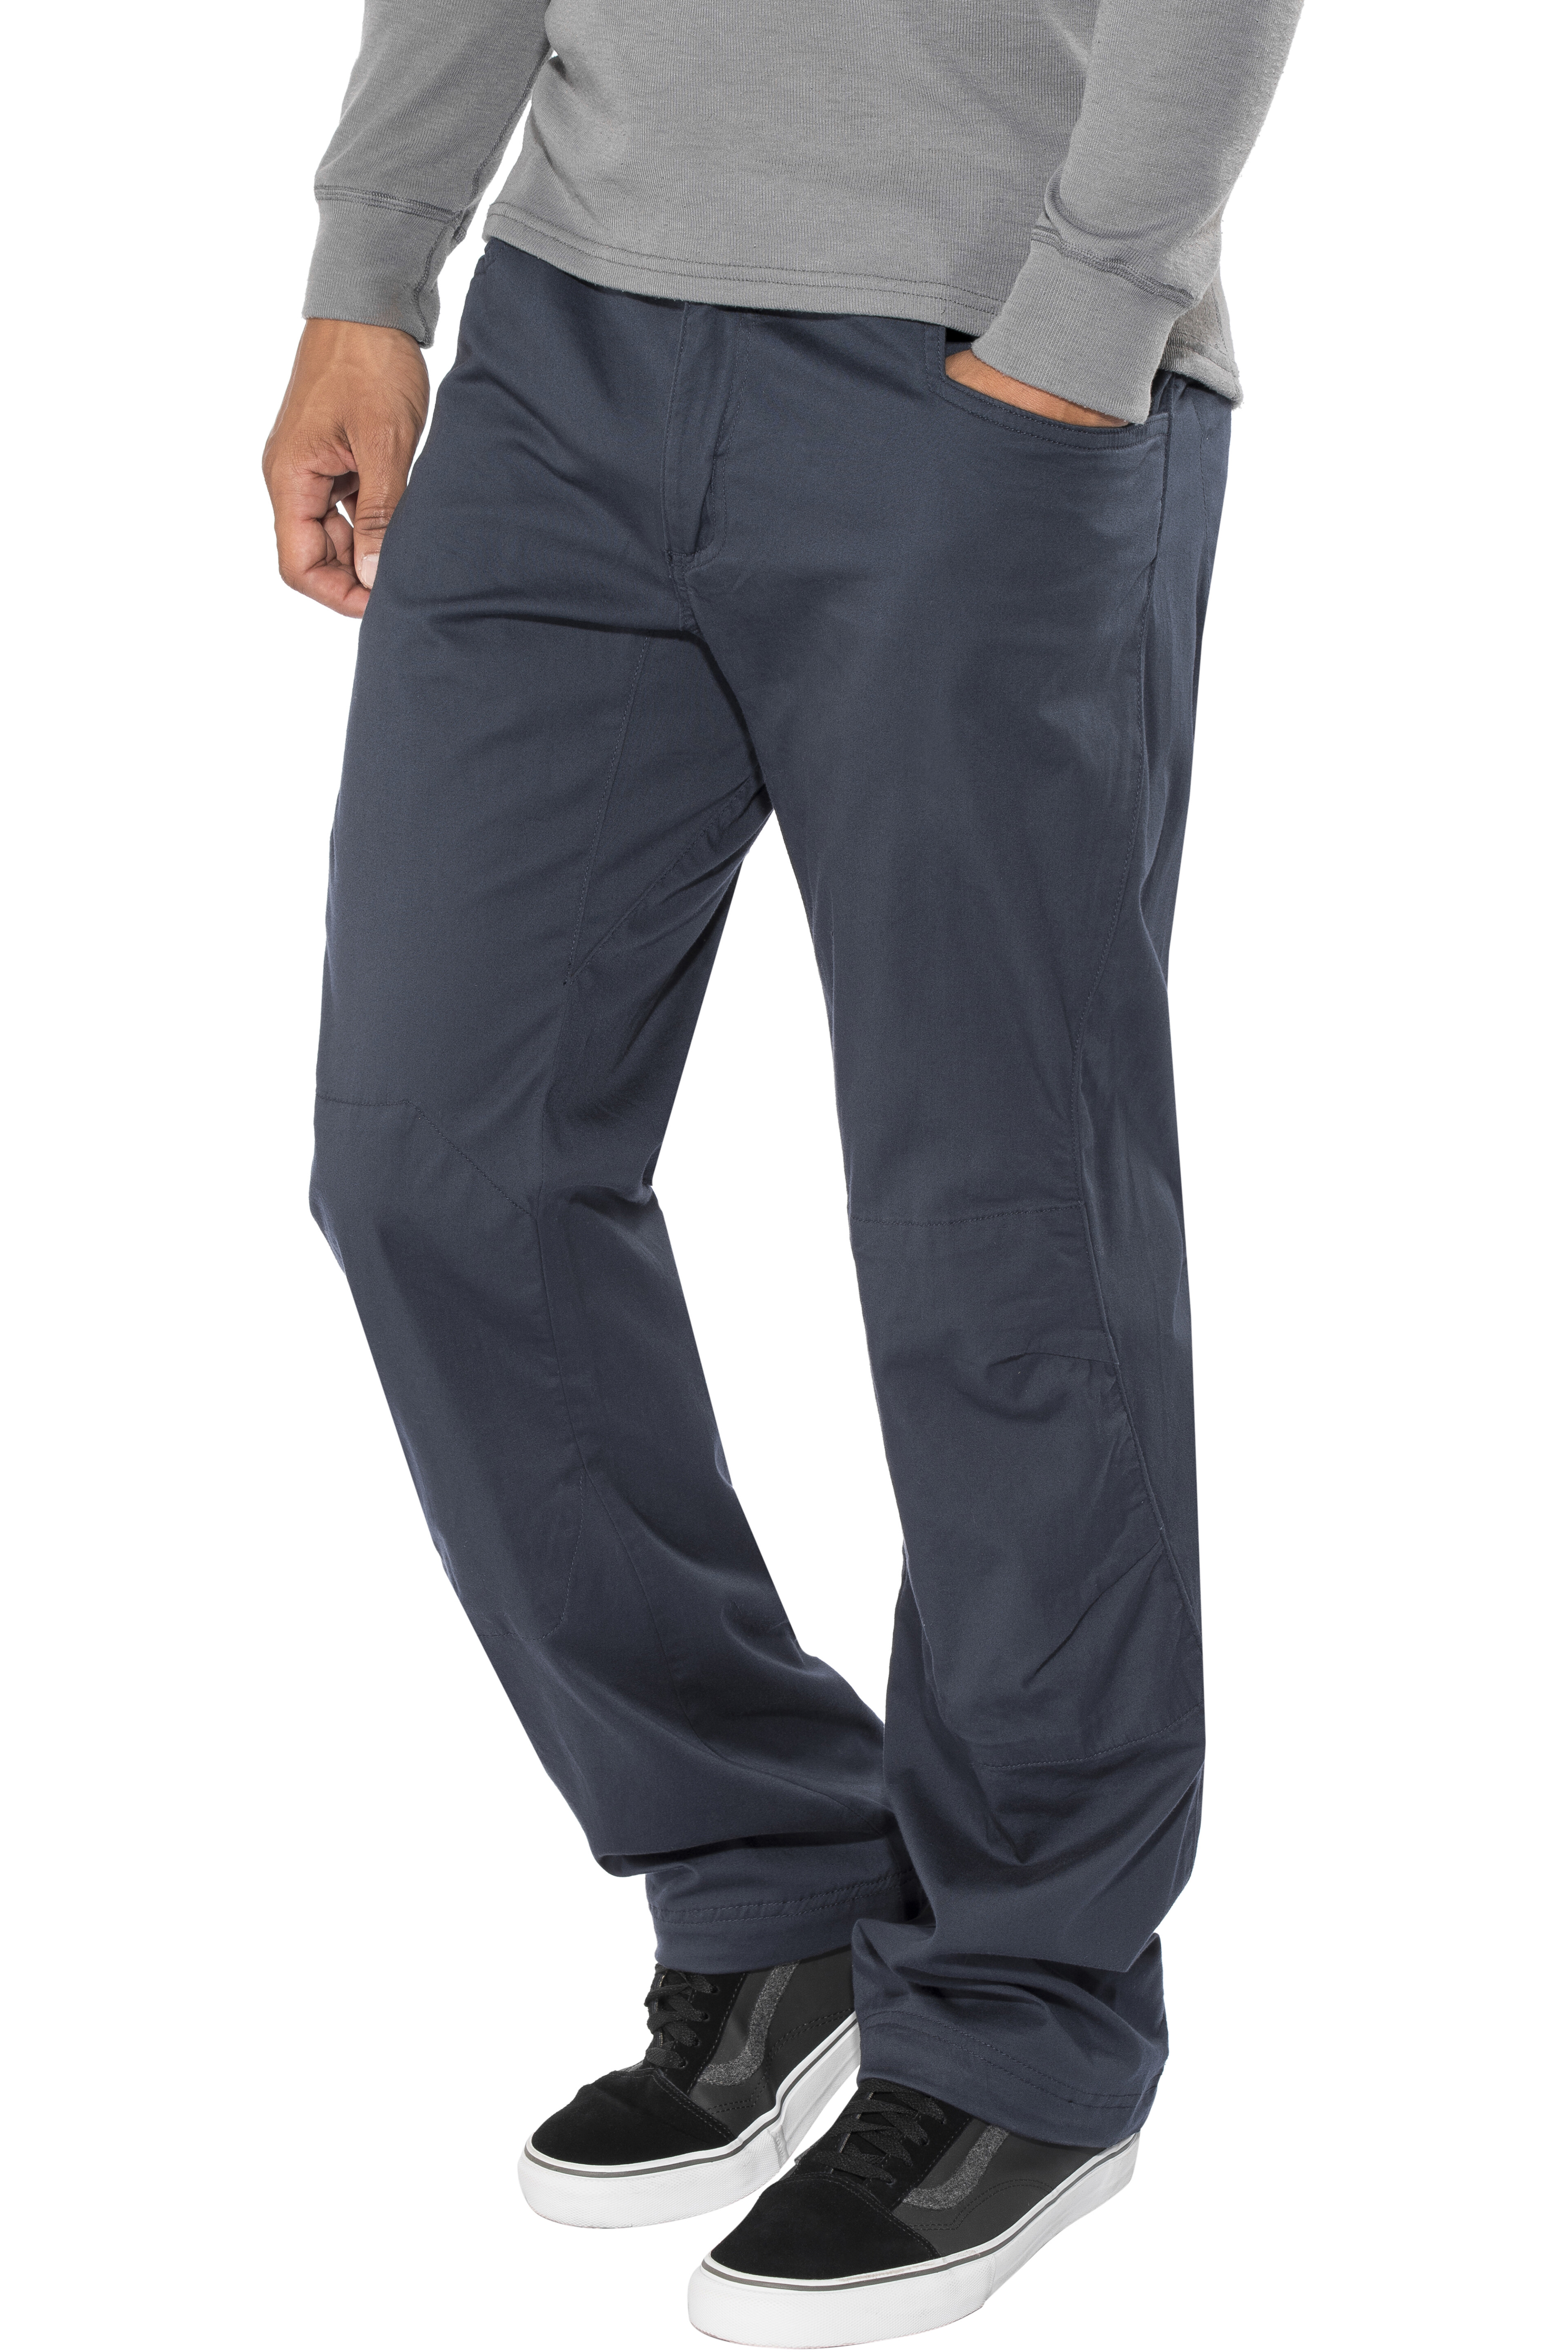 11f73812 Black Diamond Credo Pantalones Hombre, captain